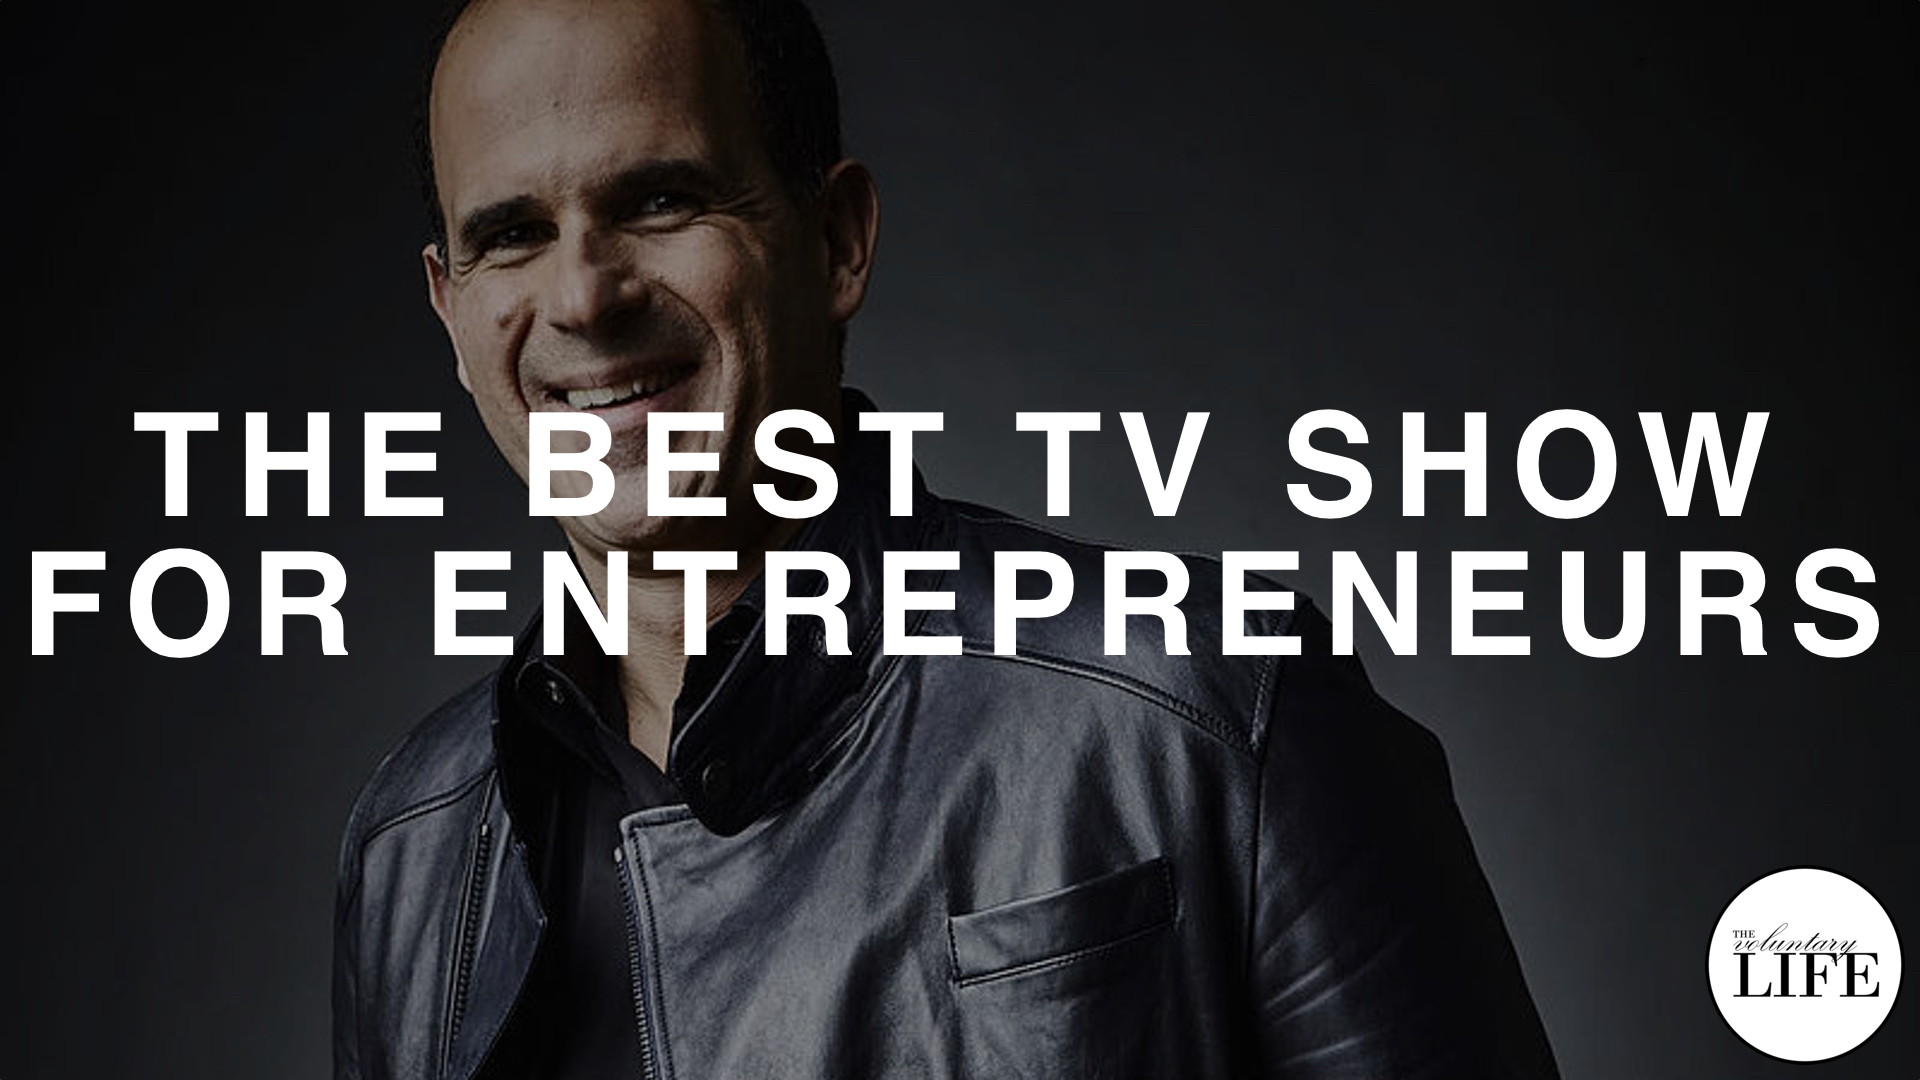 314 The Best TV Show For Entrepreneurs